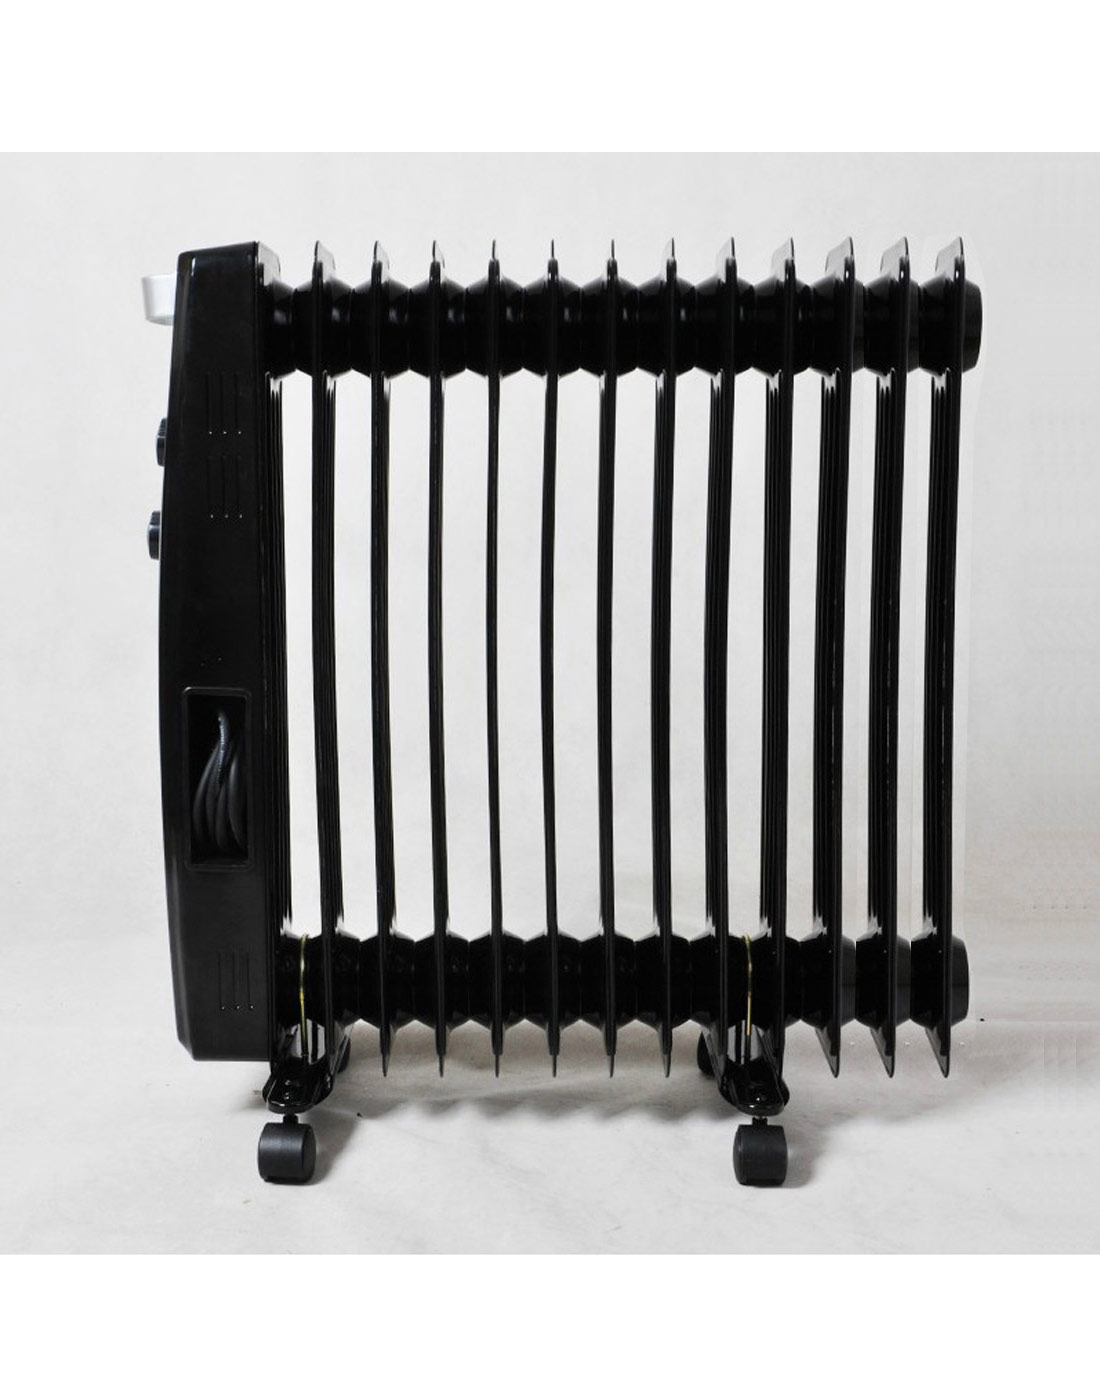 [Supermarket] lynx ndy03-26 gree oil radiator heater heating oil heater speed thermoelectric heating thermostat type 13